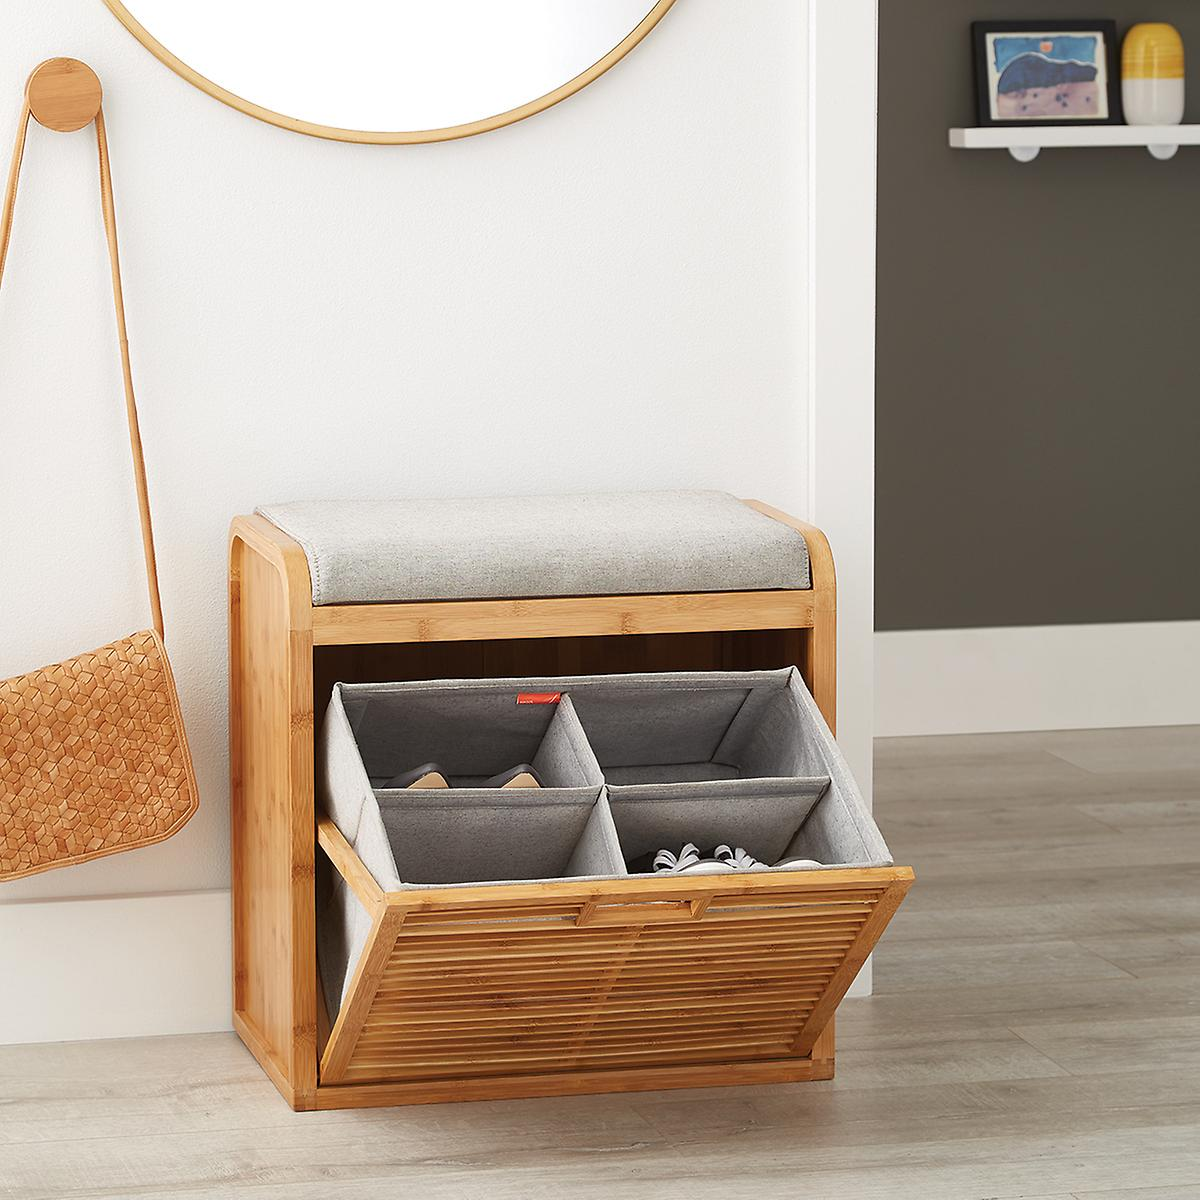 small wooden shoe storage bench